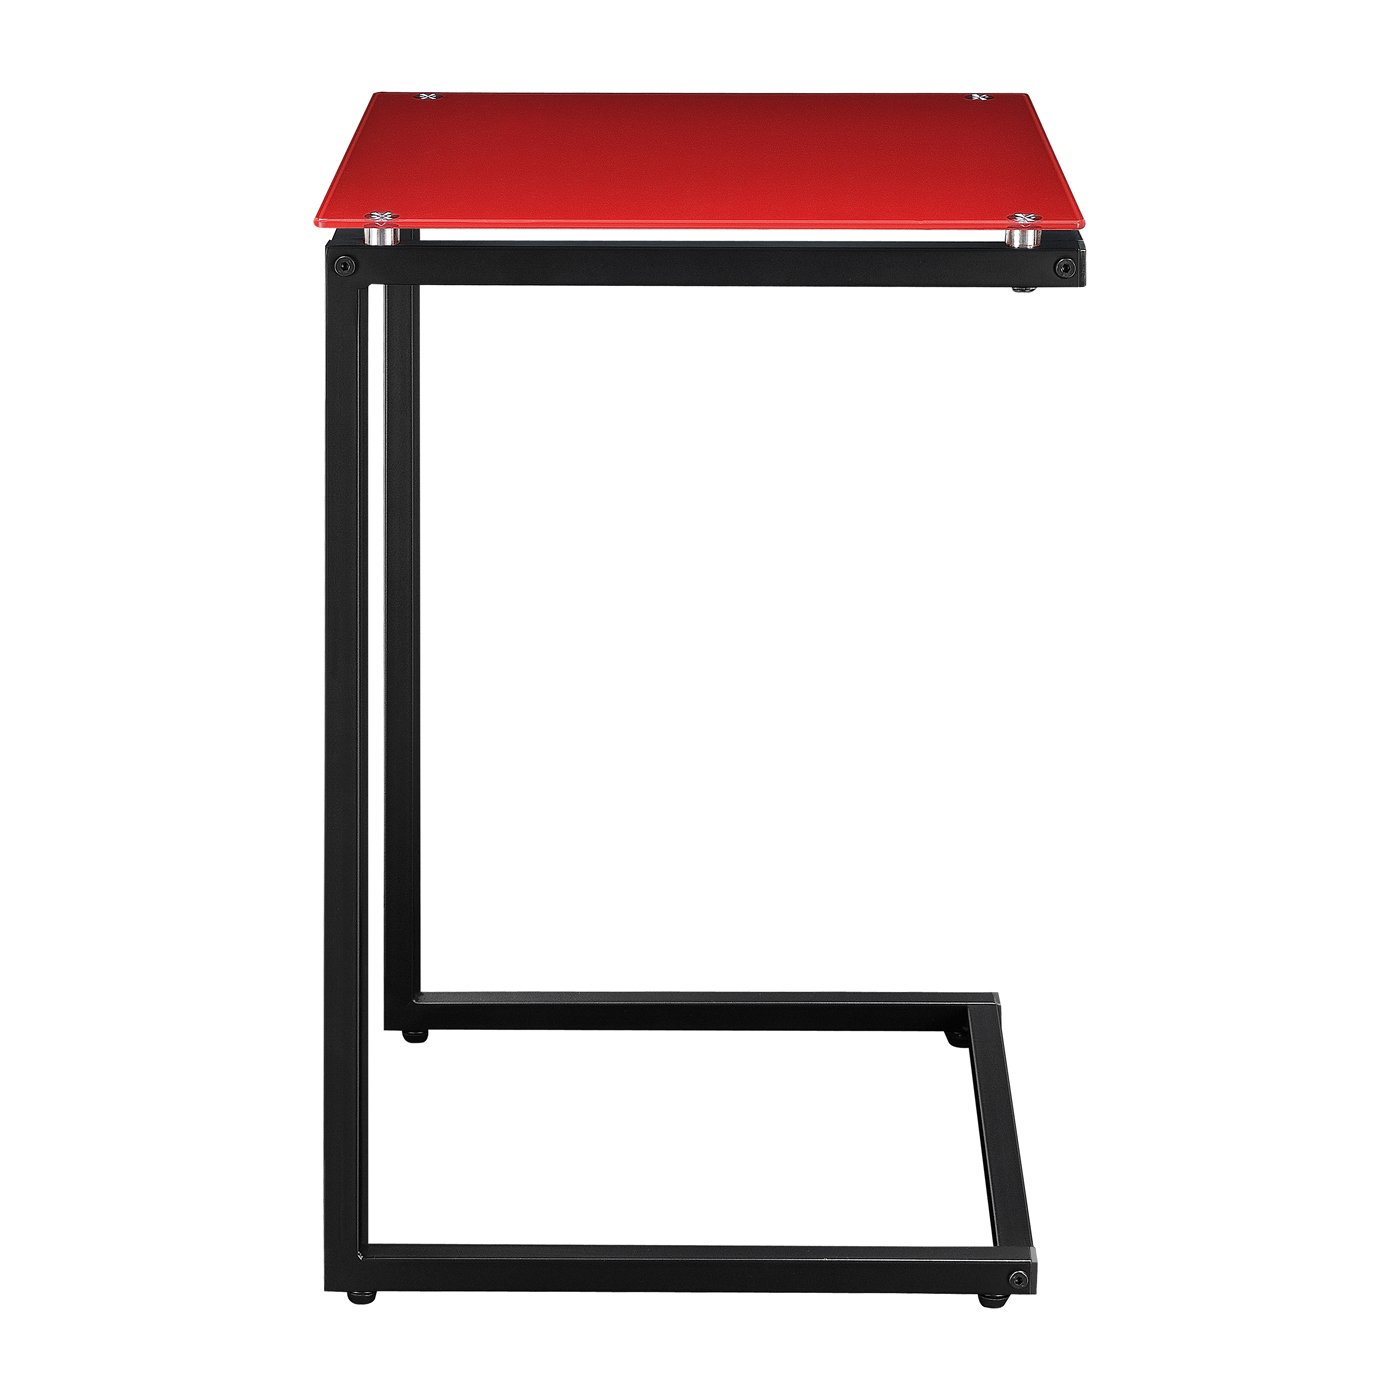 Luxurious C Table From IKEA : Modern C Table Design Red Iron Top Amazing Furniture For Living Room